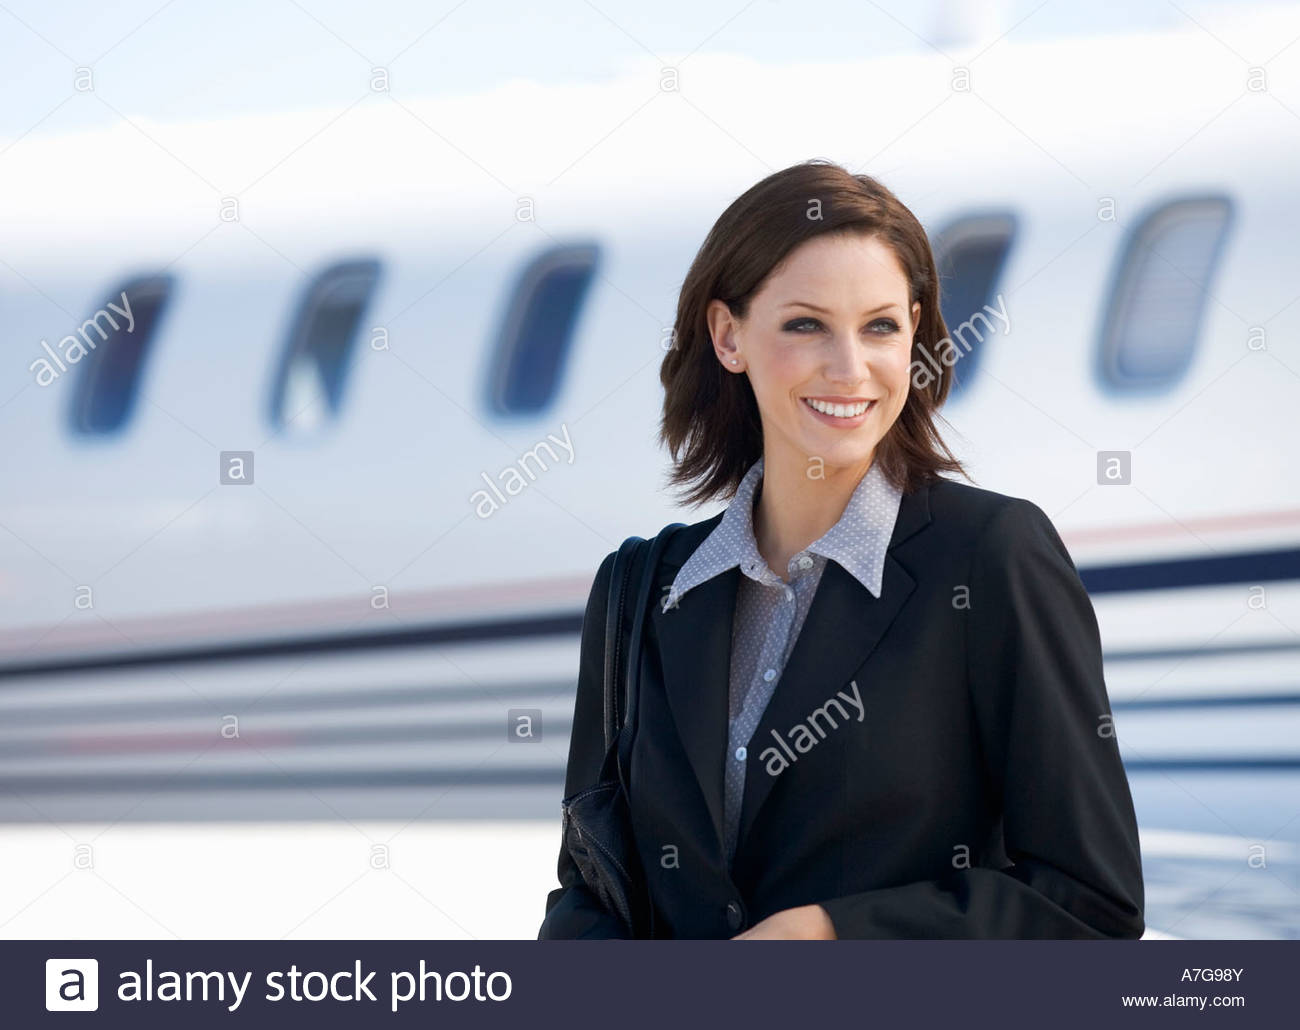 A business woman standing by a plane - Stock Image